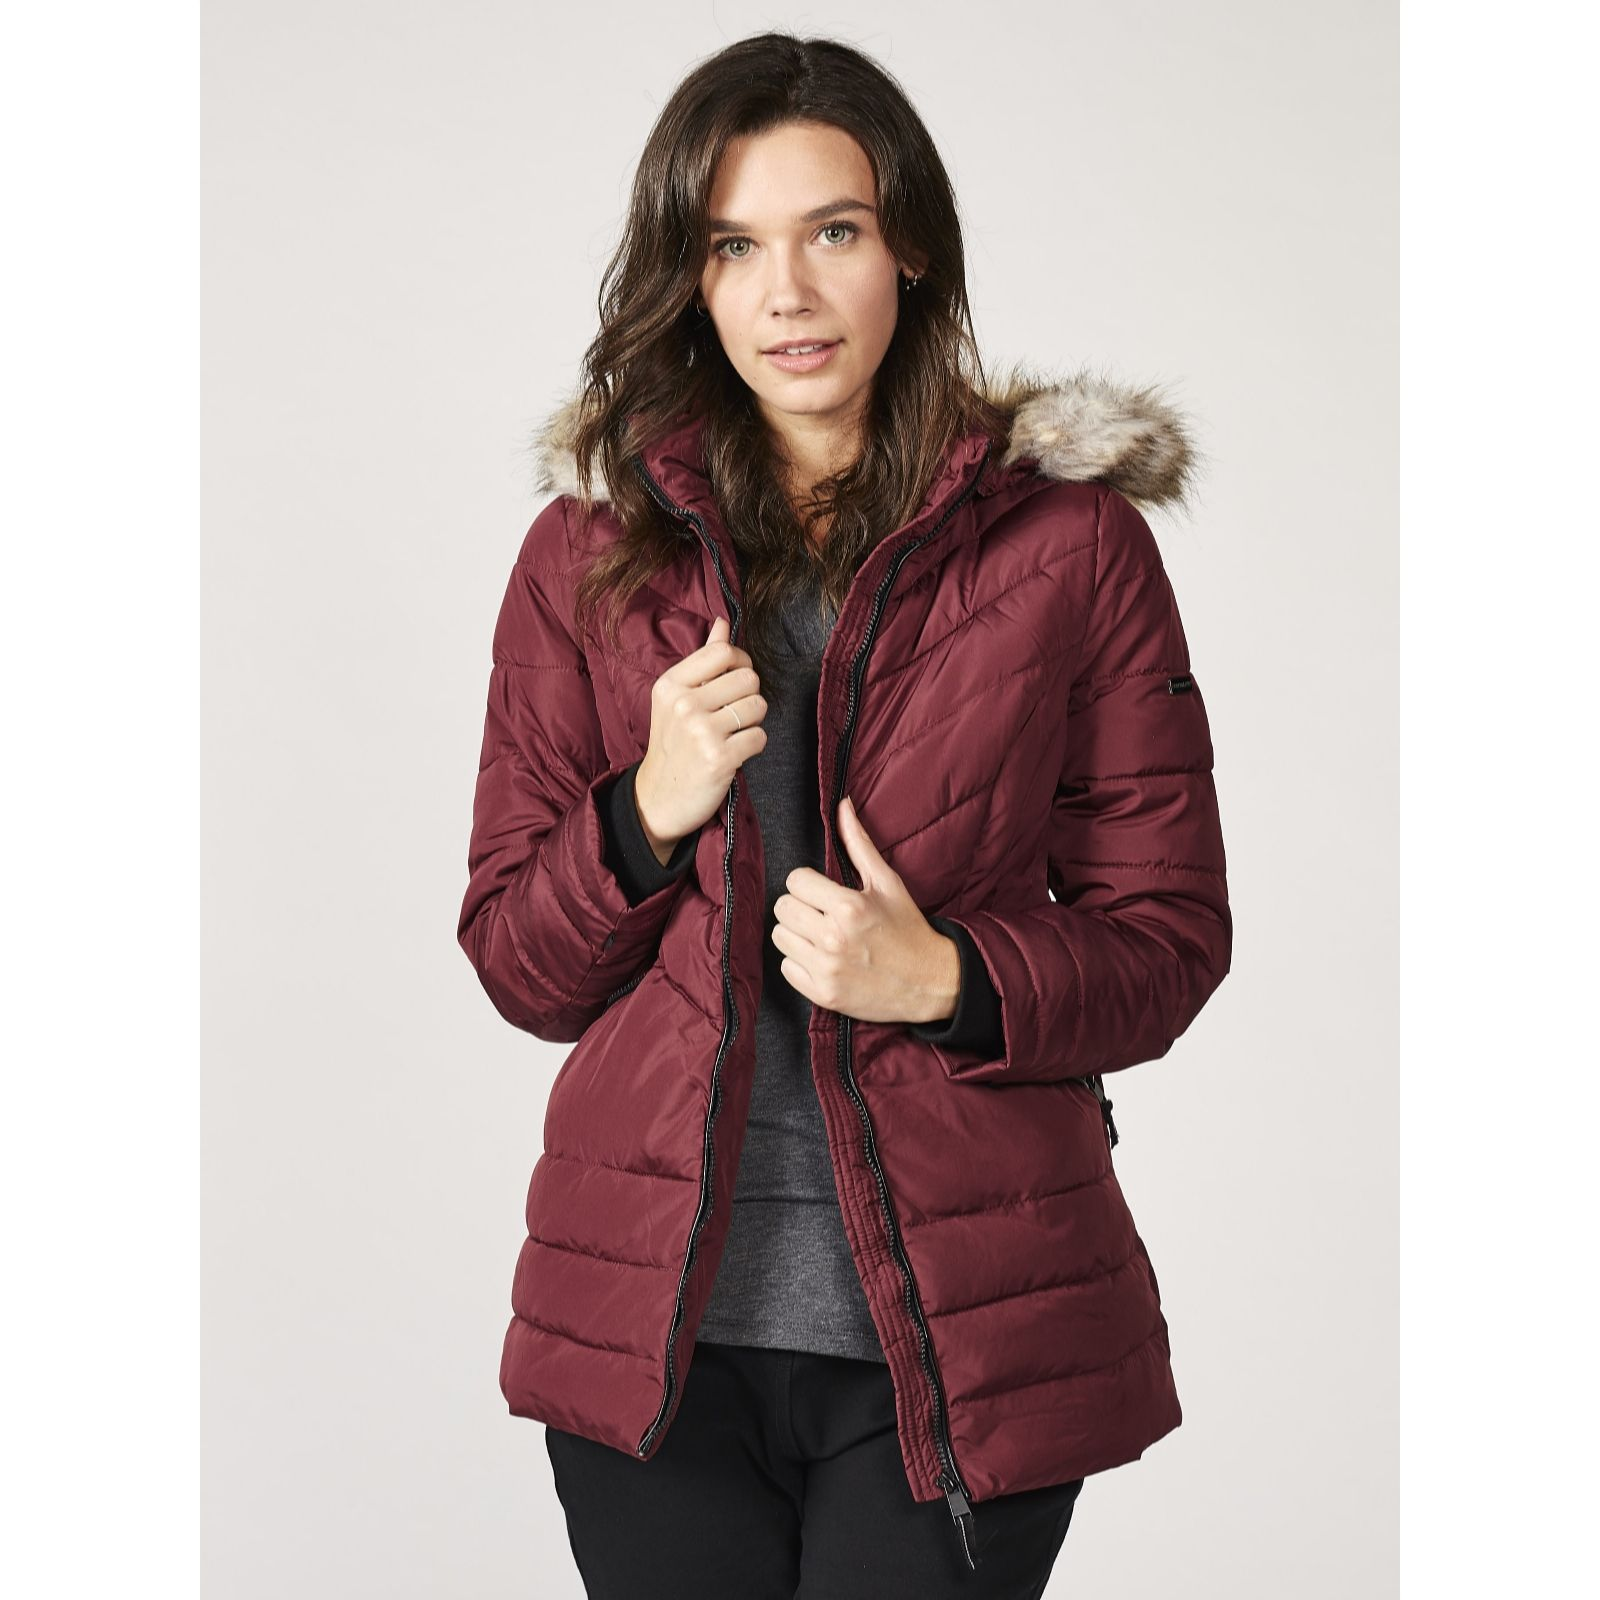 2afc4873dd86 Centigrade Quilted Faux Fur Hooded Jacket - QVC UK